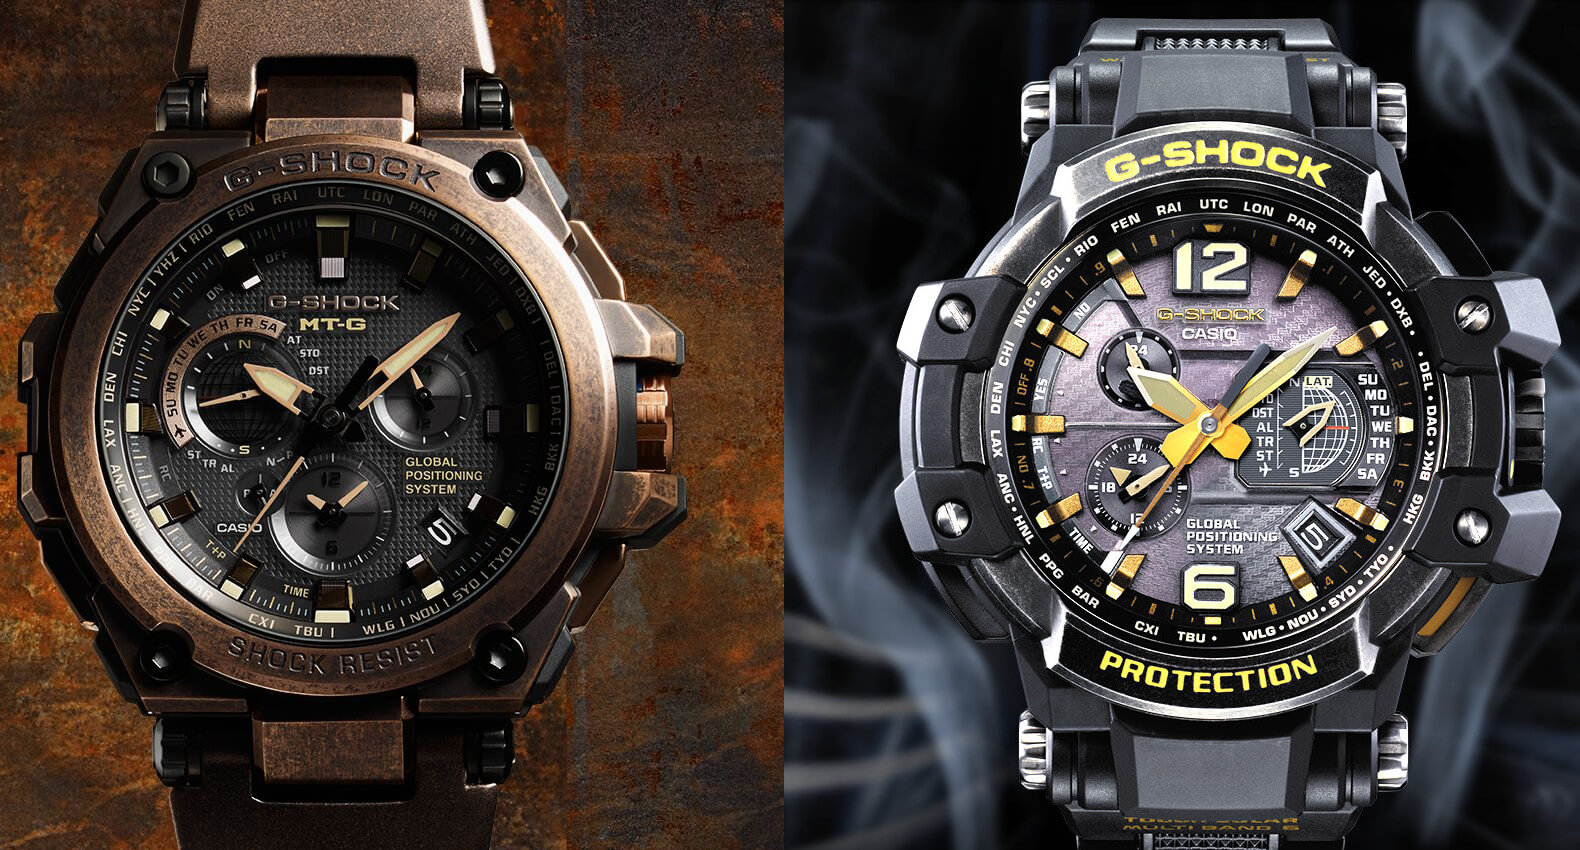 8cbc09c7313a G-Shock GPW-1000VFC-1A and Rose Gold MTG-G1000AR-1A Sunken Treasure ...